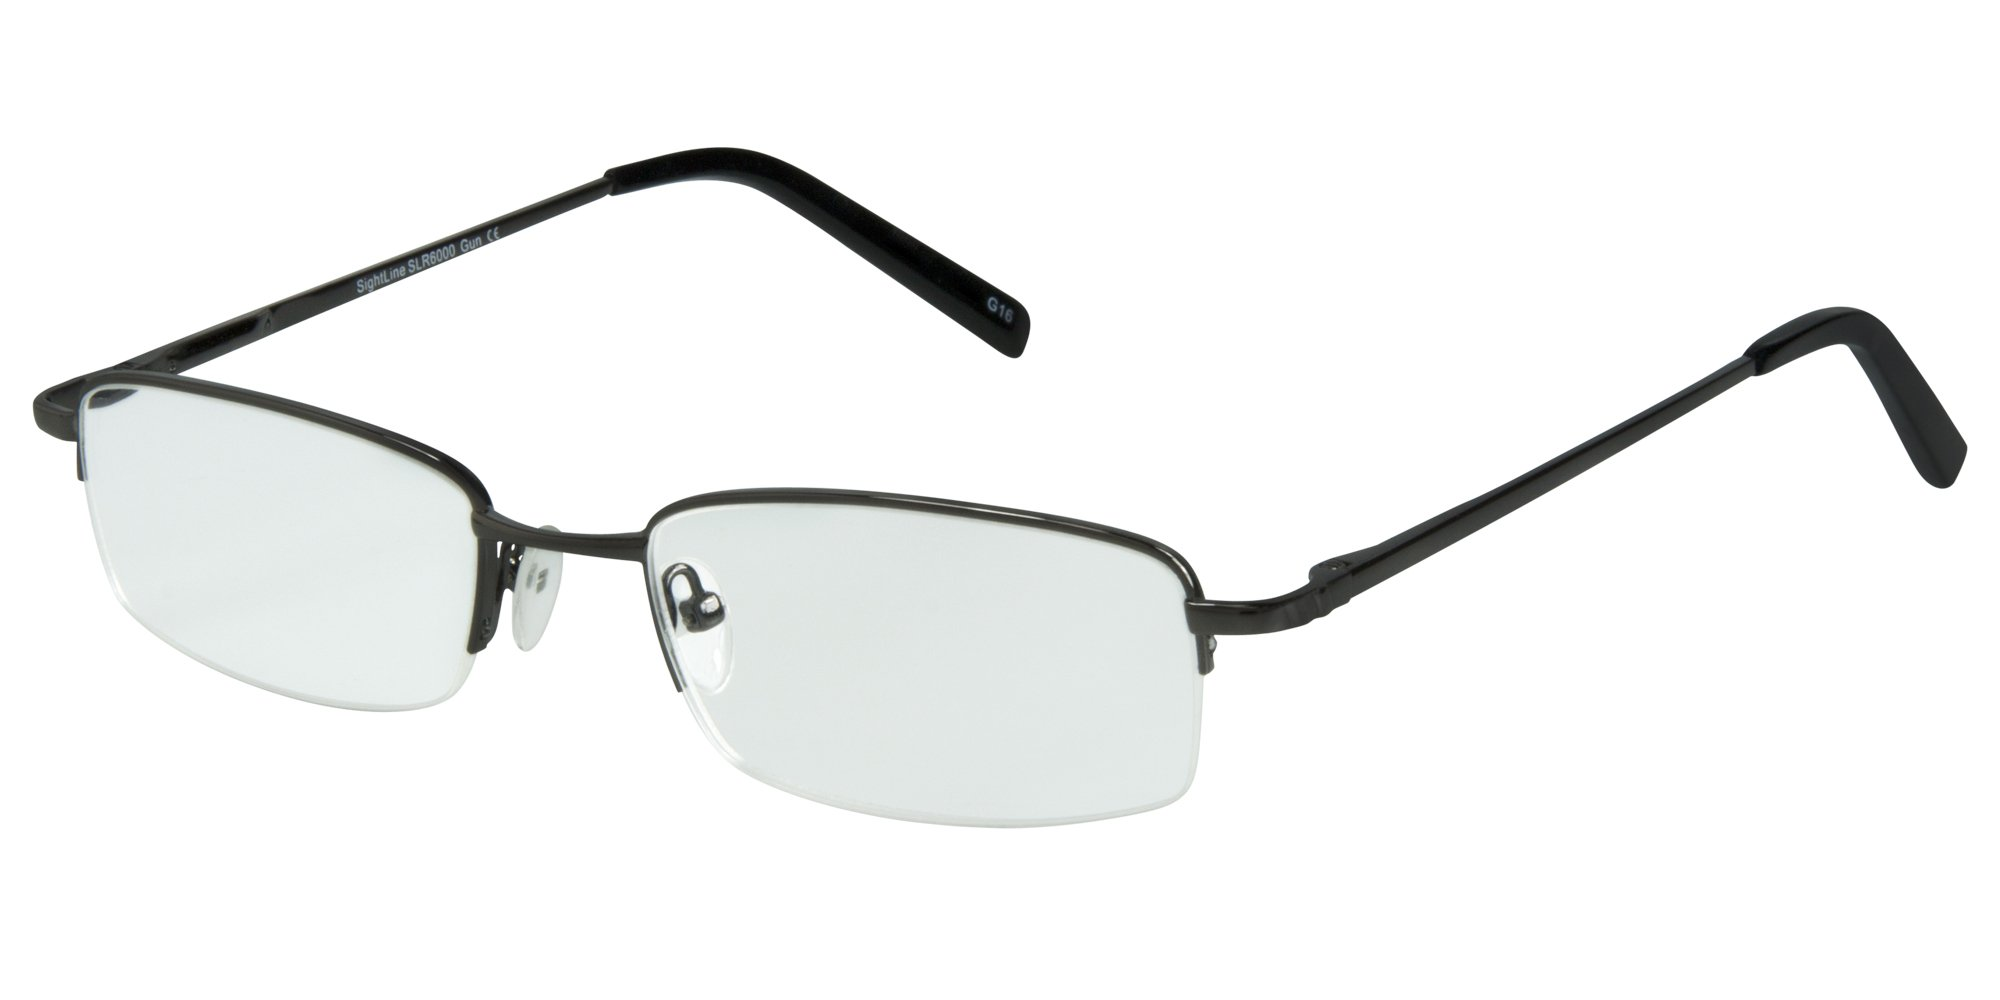 e36e9cb1d6 SightLine Multifocal Computer Reading Glasses 6000 Semi-Rimless Designer  Frames (1.50